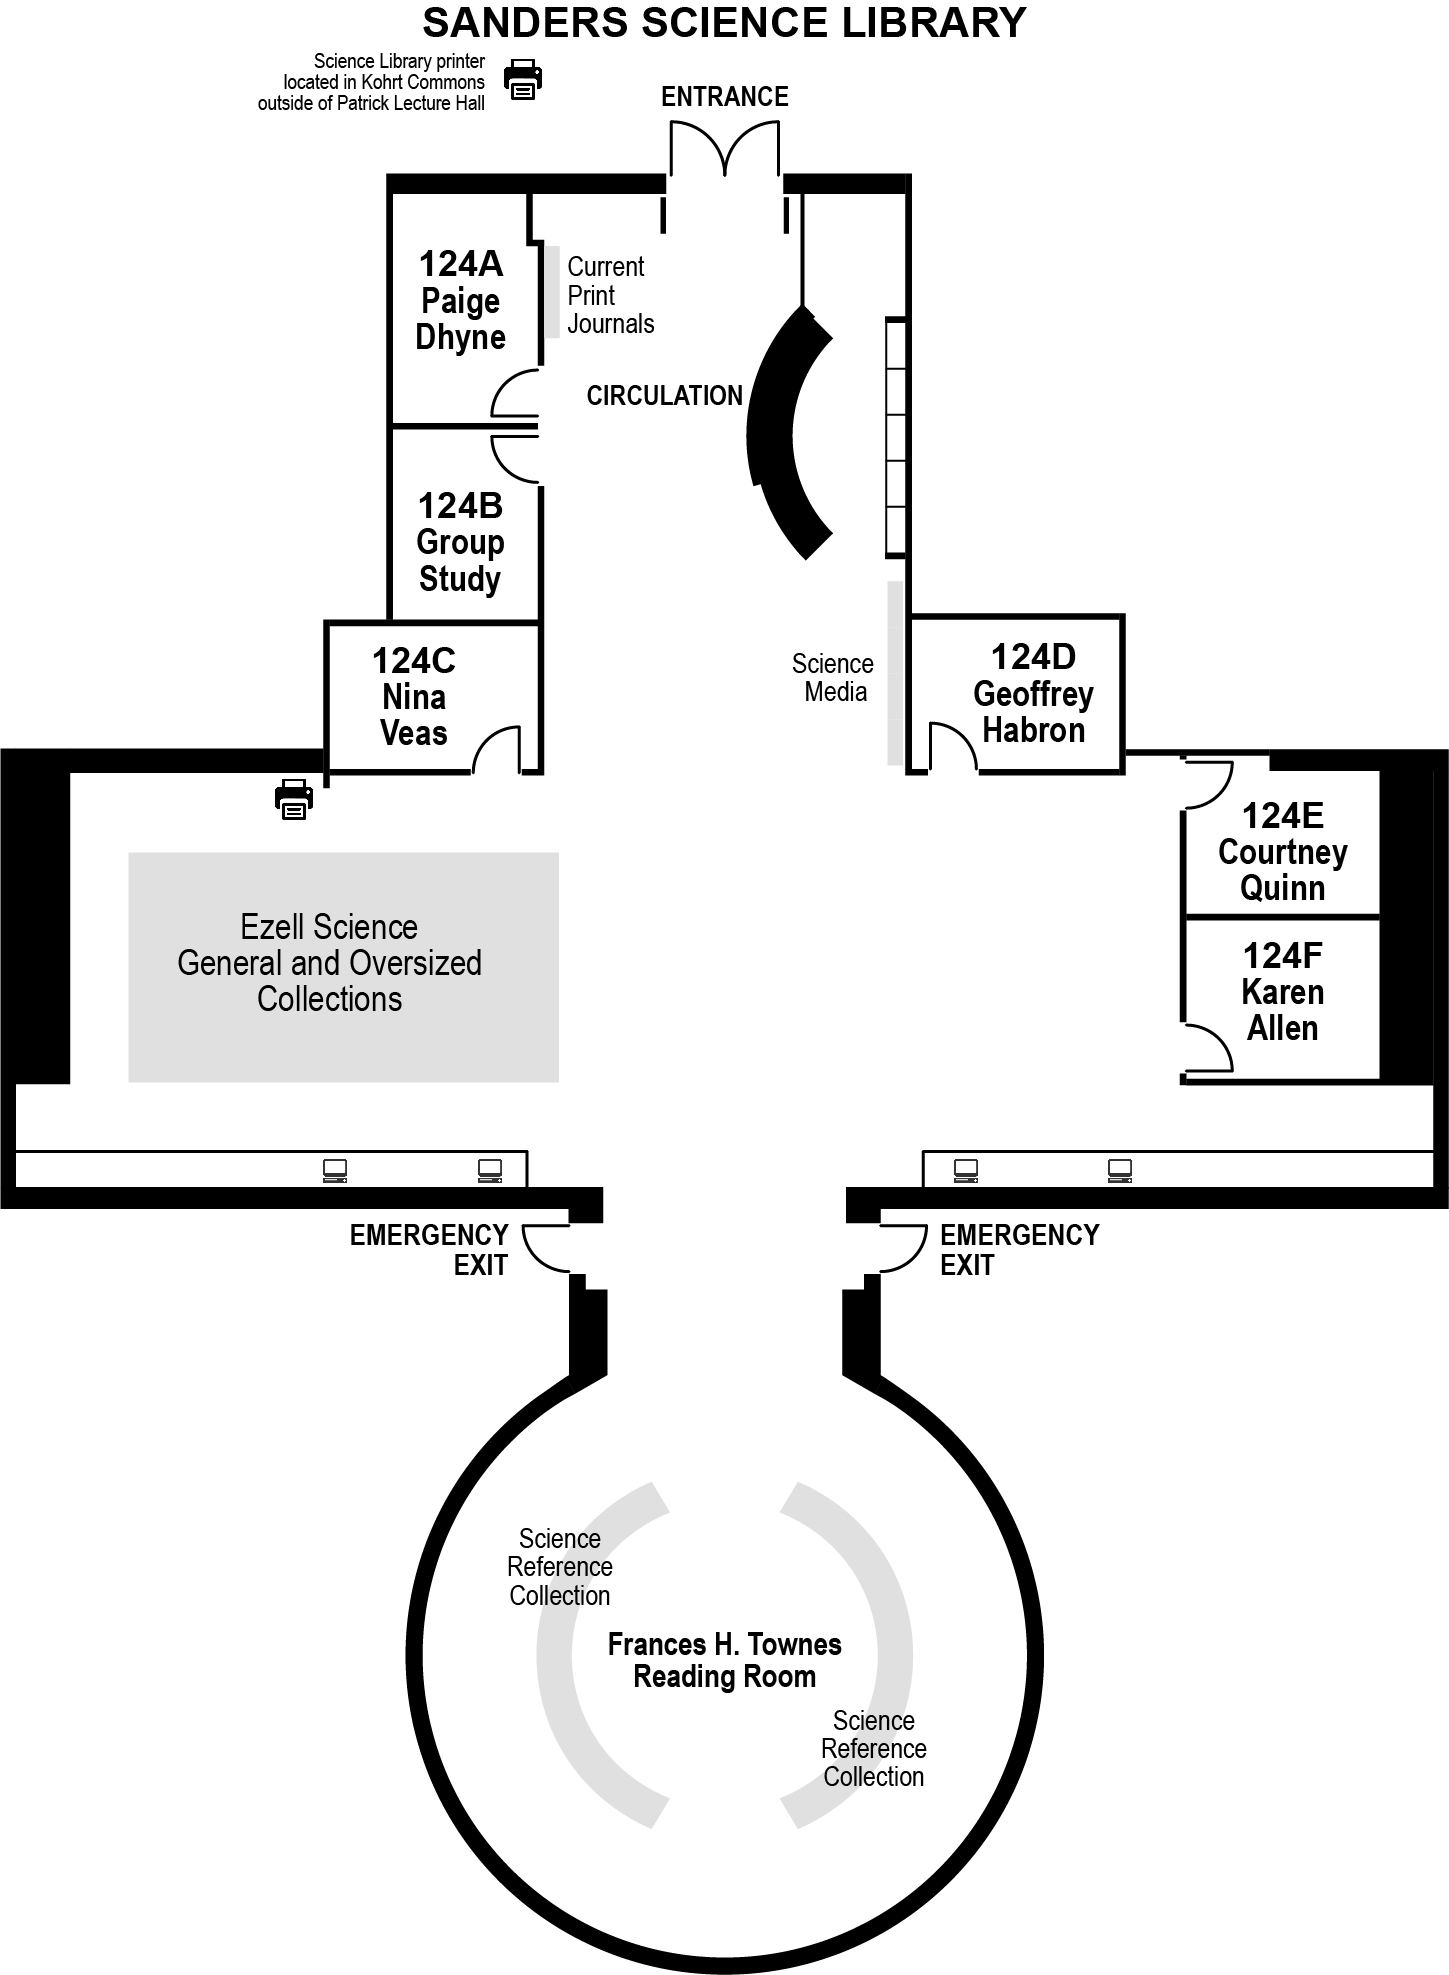 Science Library Floor Plan